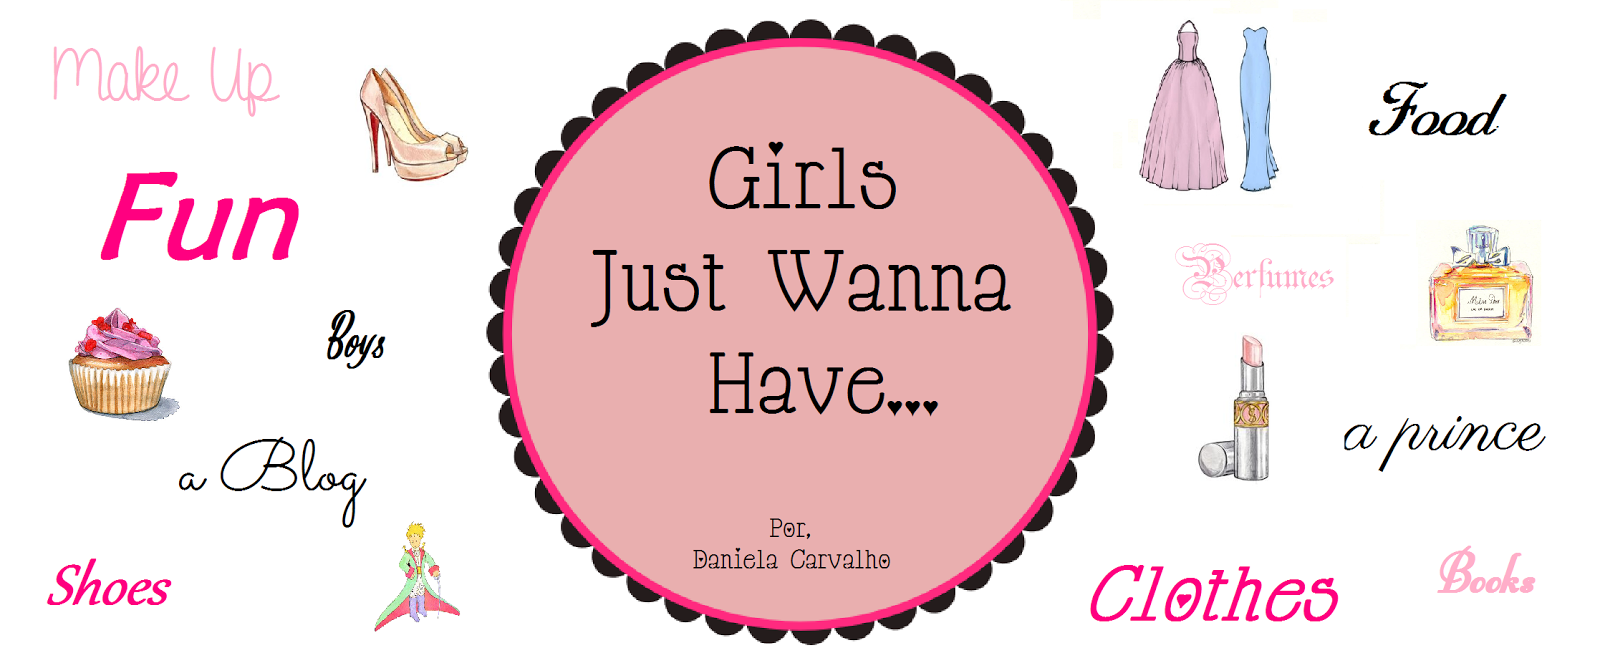 Girls Just Wanna Have...